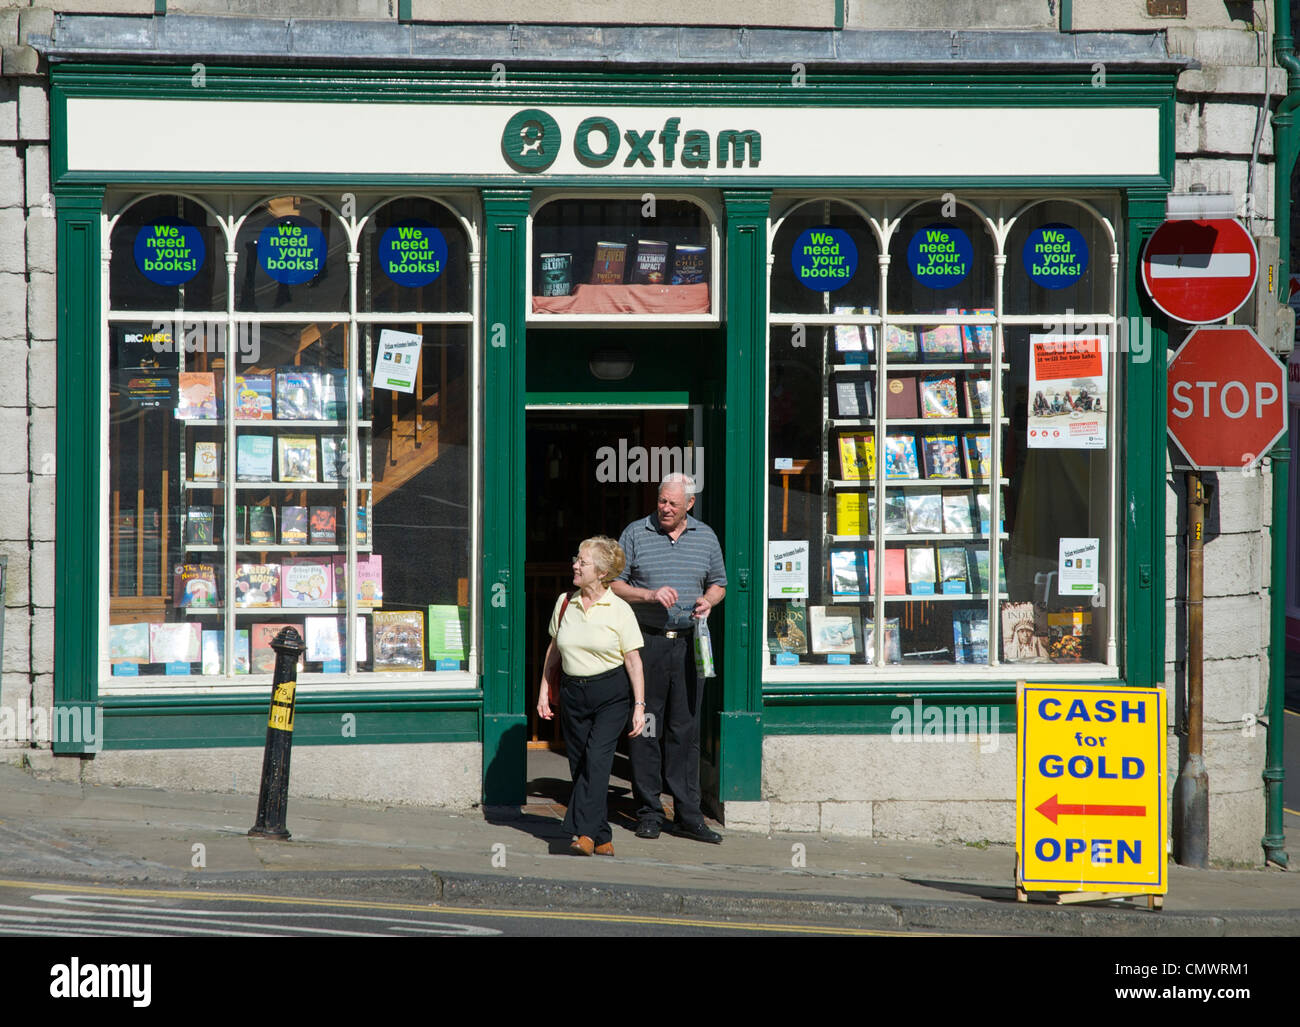 Senior man and woman, leaving Oxfam shop, in the town of Ulverston, Cumbria, England UK - Stock Image